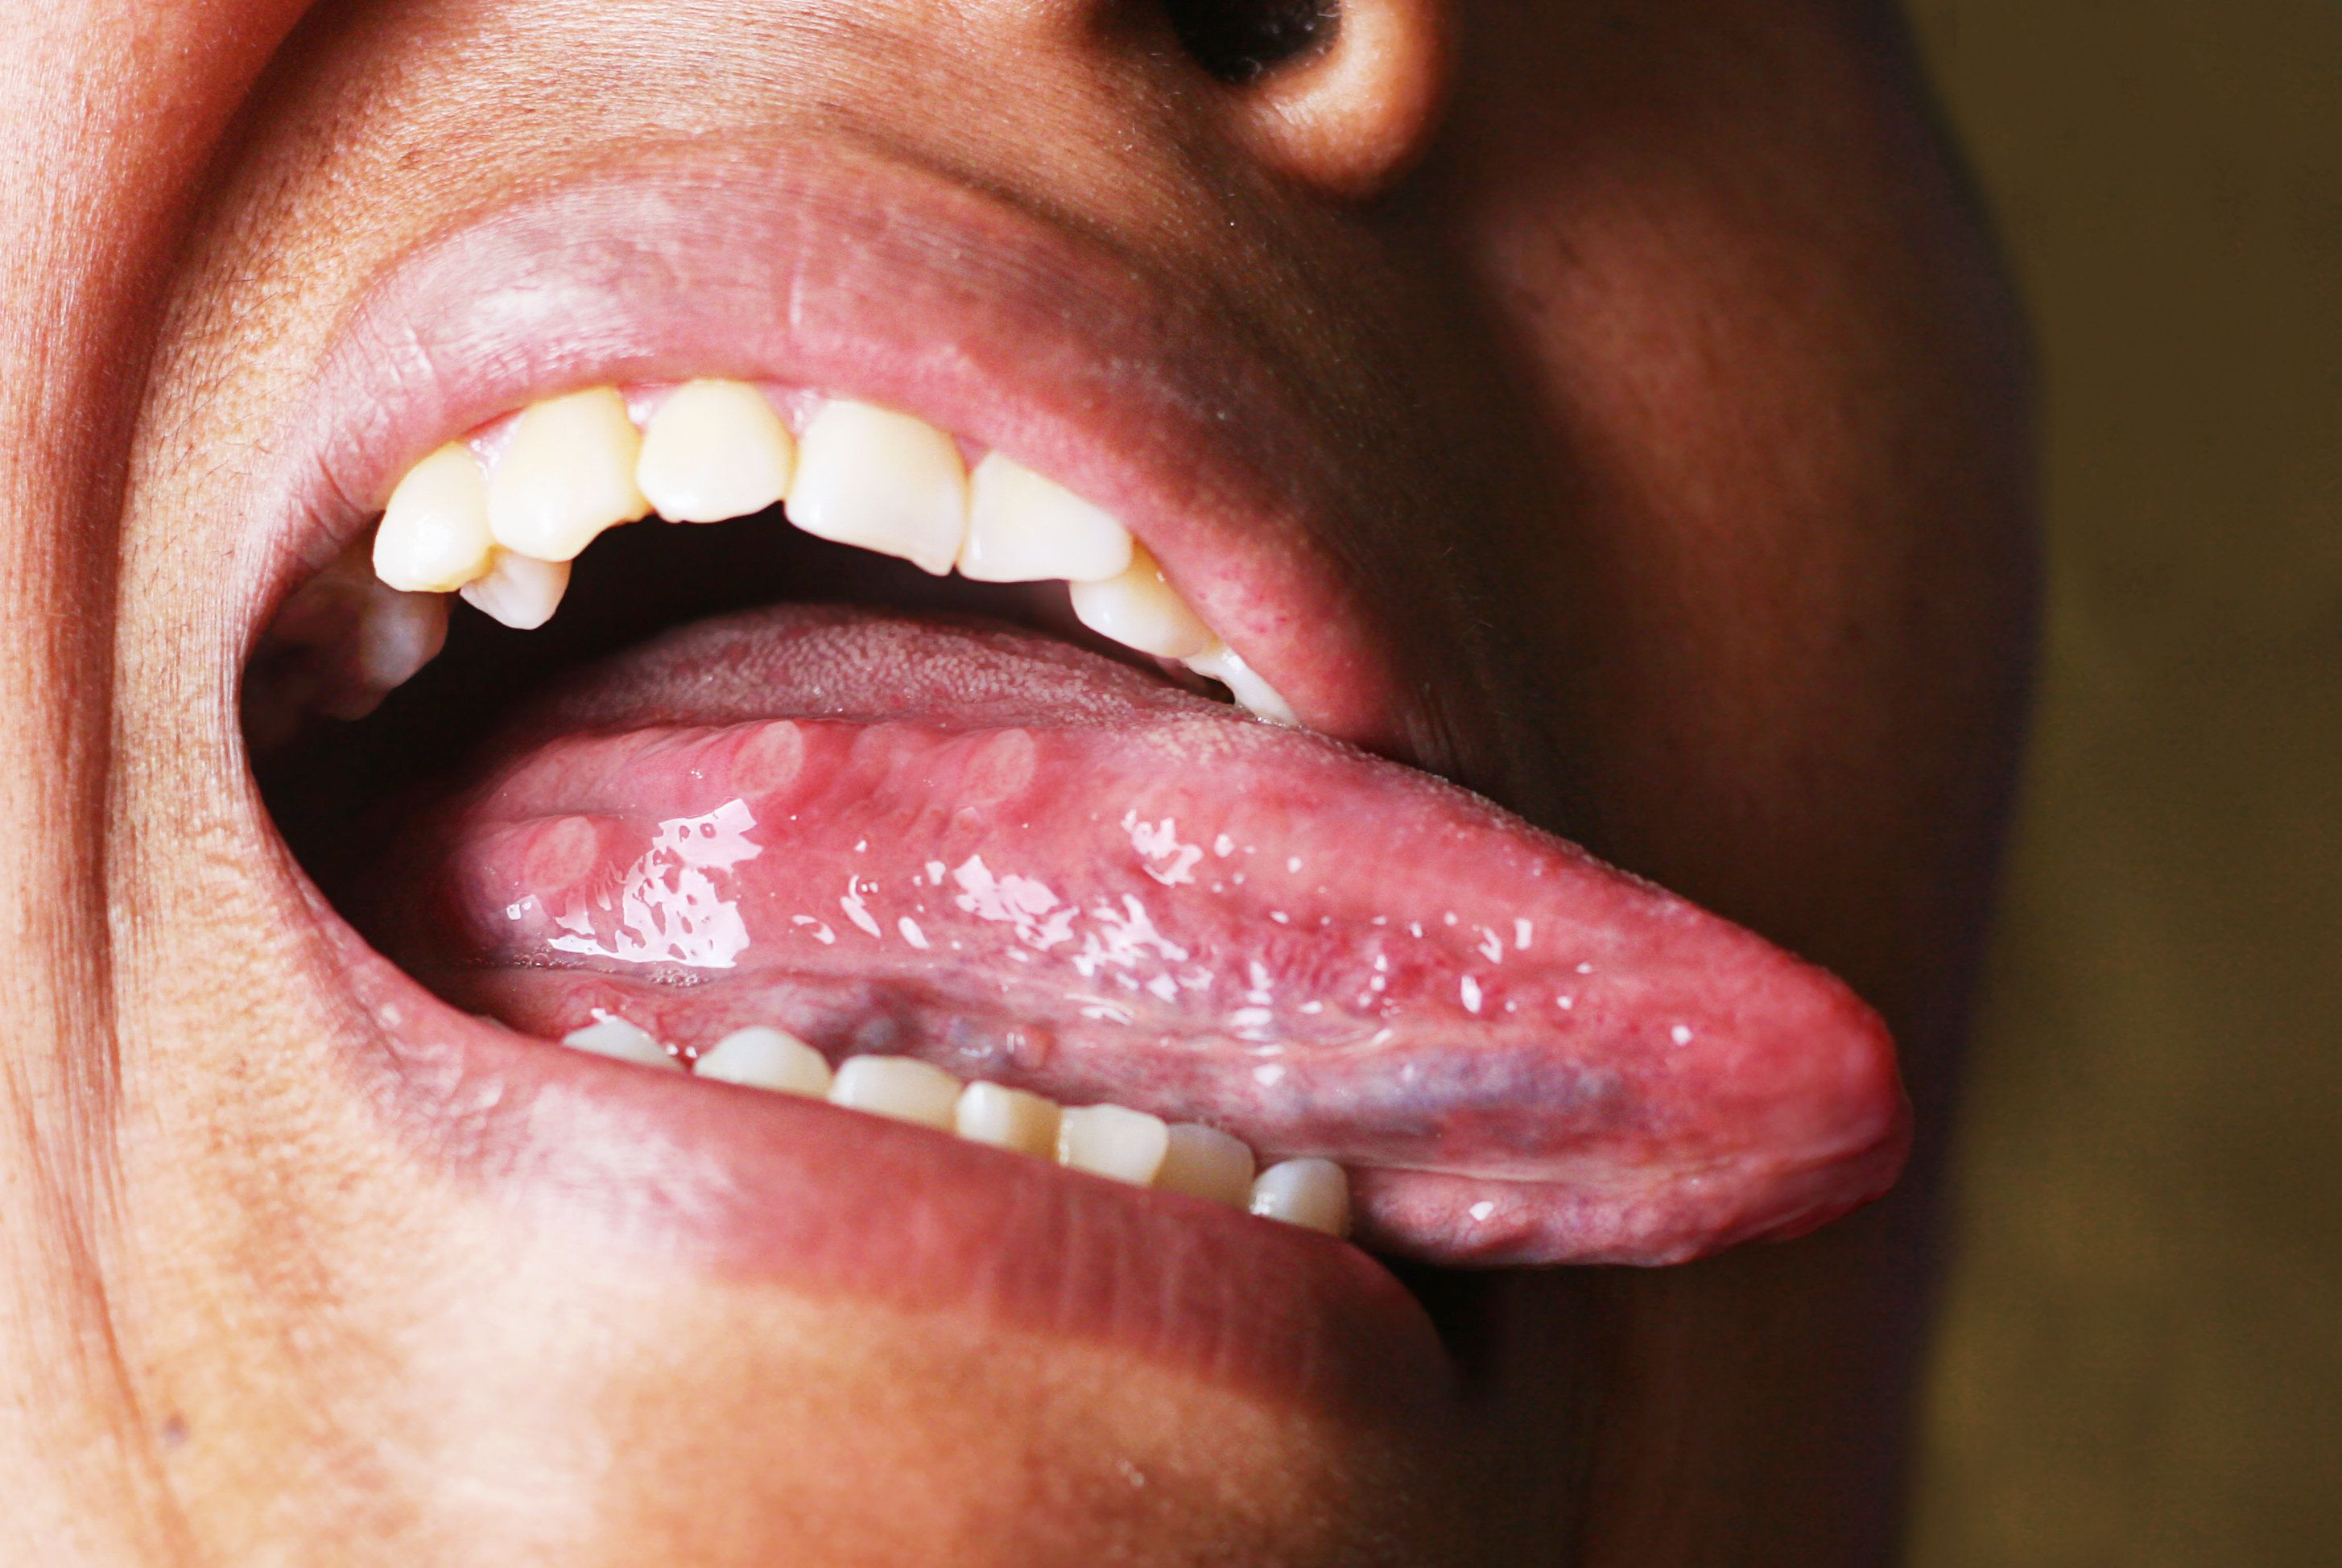 Acne on the tongue caused by bad nutrition